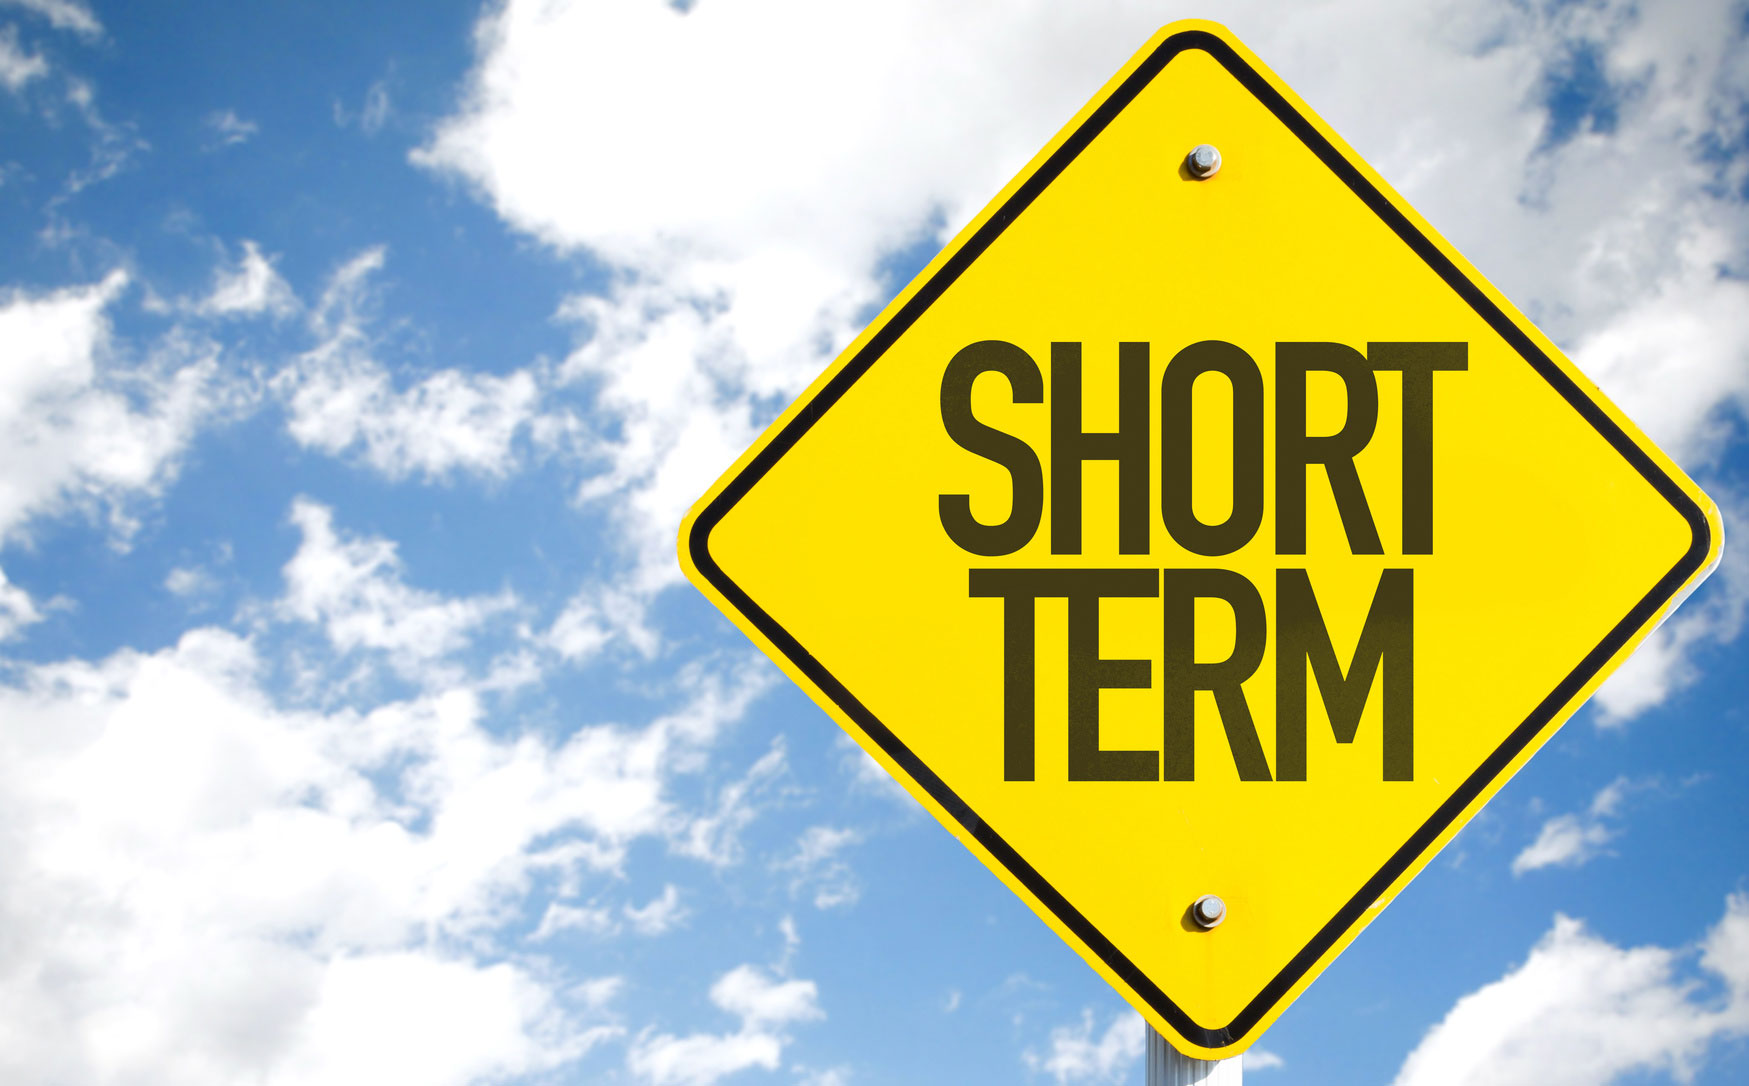 What You Should Know About Short Term Health Insurance